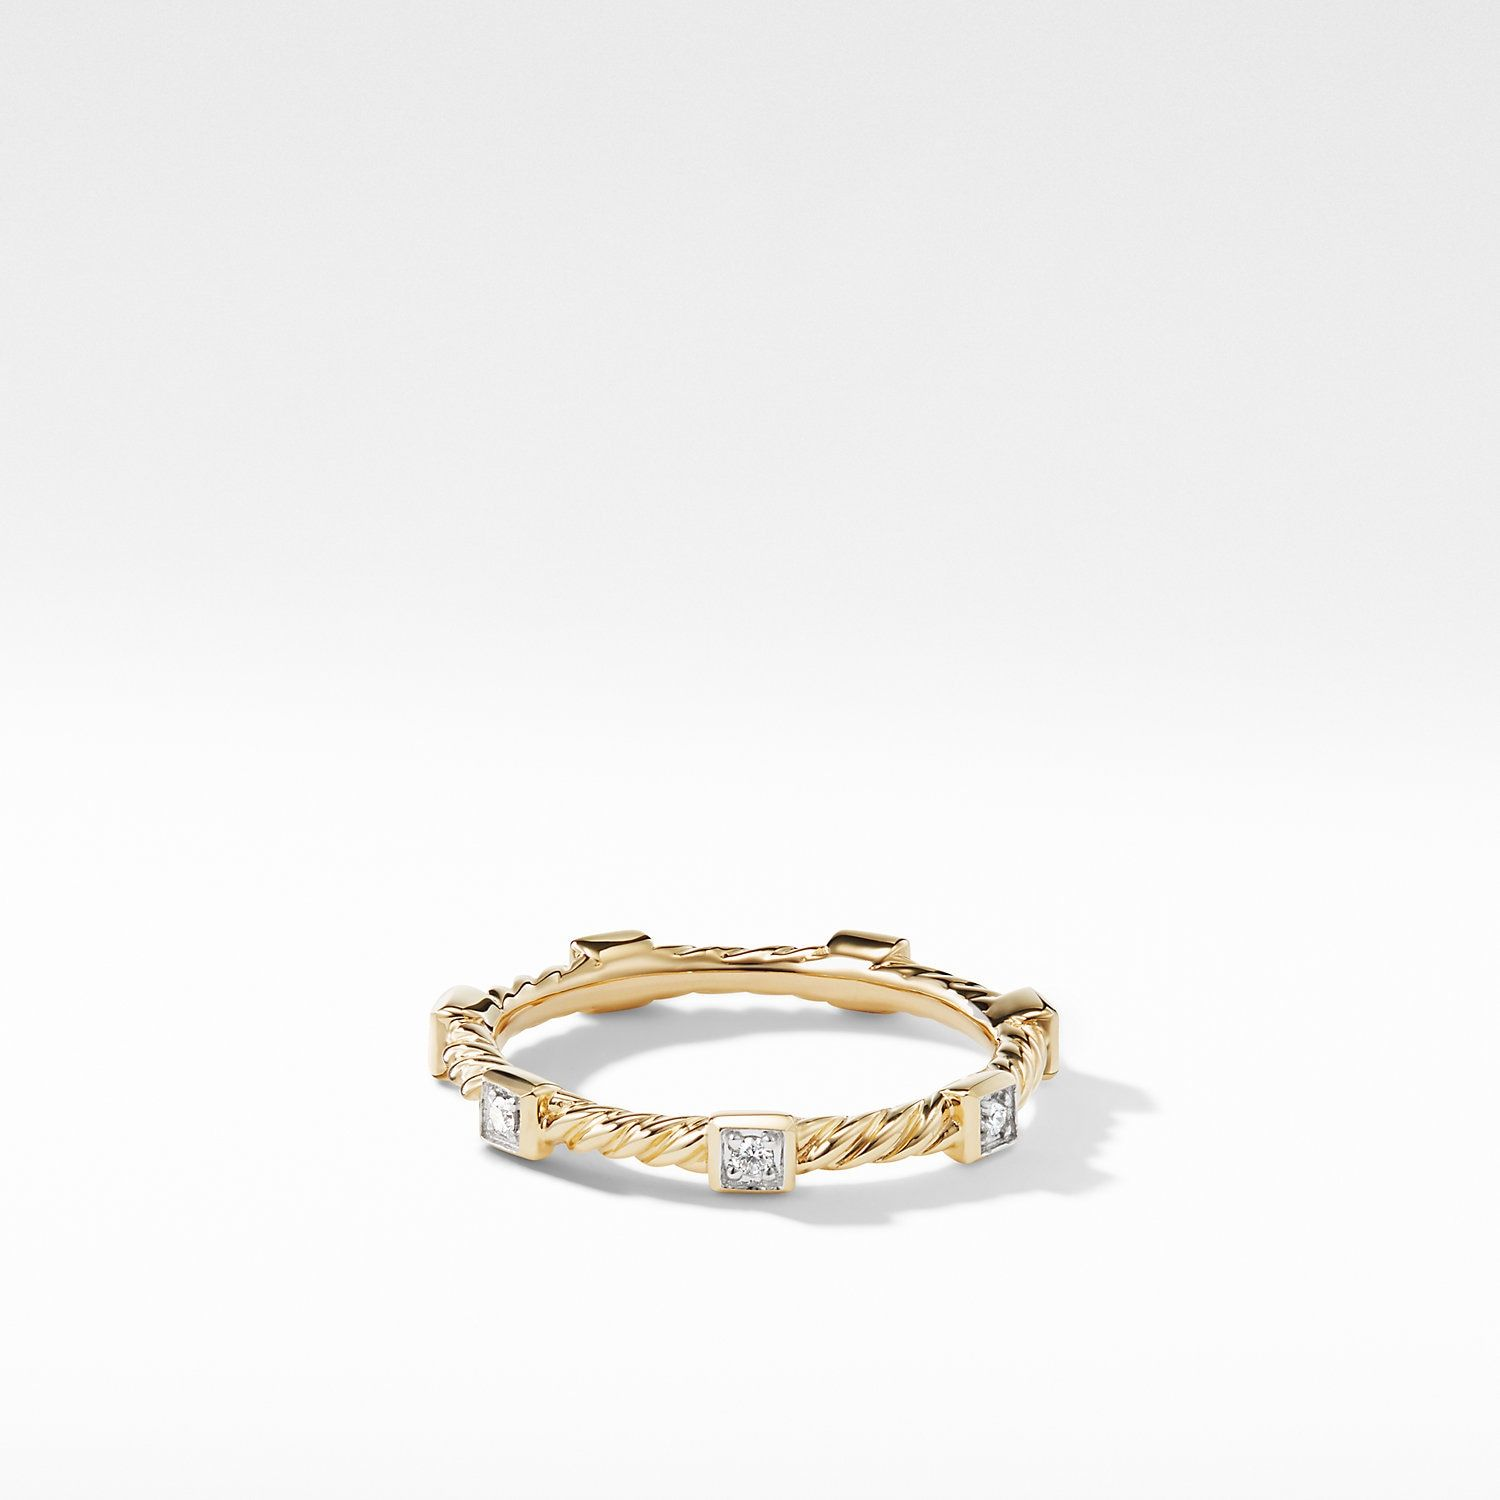 Cable Collectibles Ring With Diamonds In 18k Gold David Yurman In 2020 David Yurman Gold Rings Jewelry Women Rings